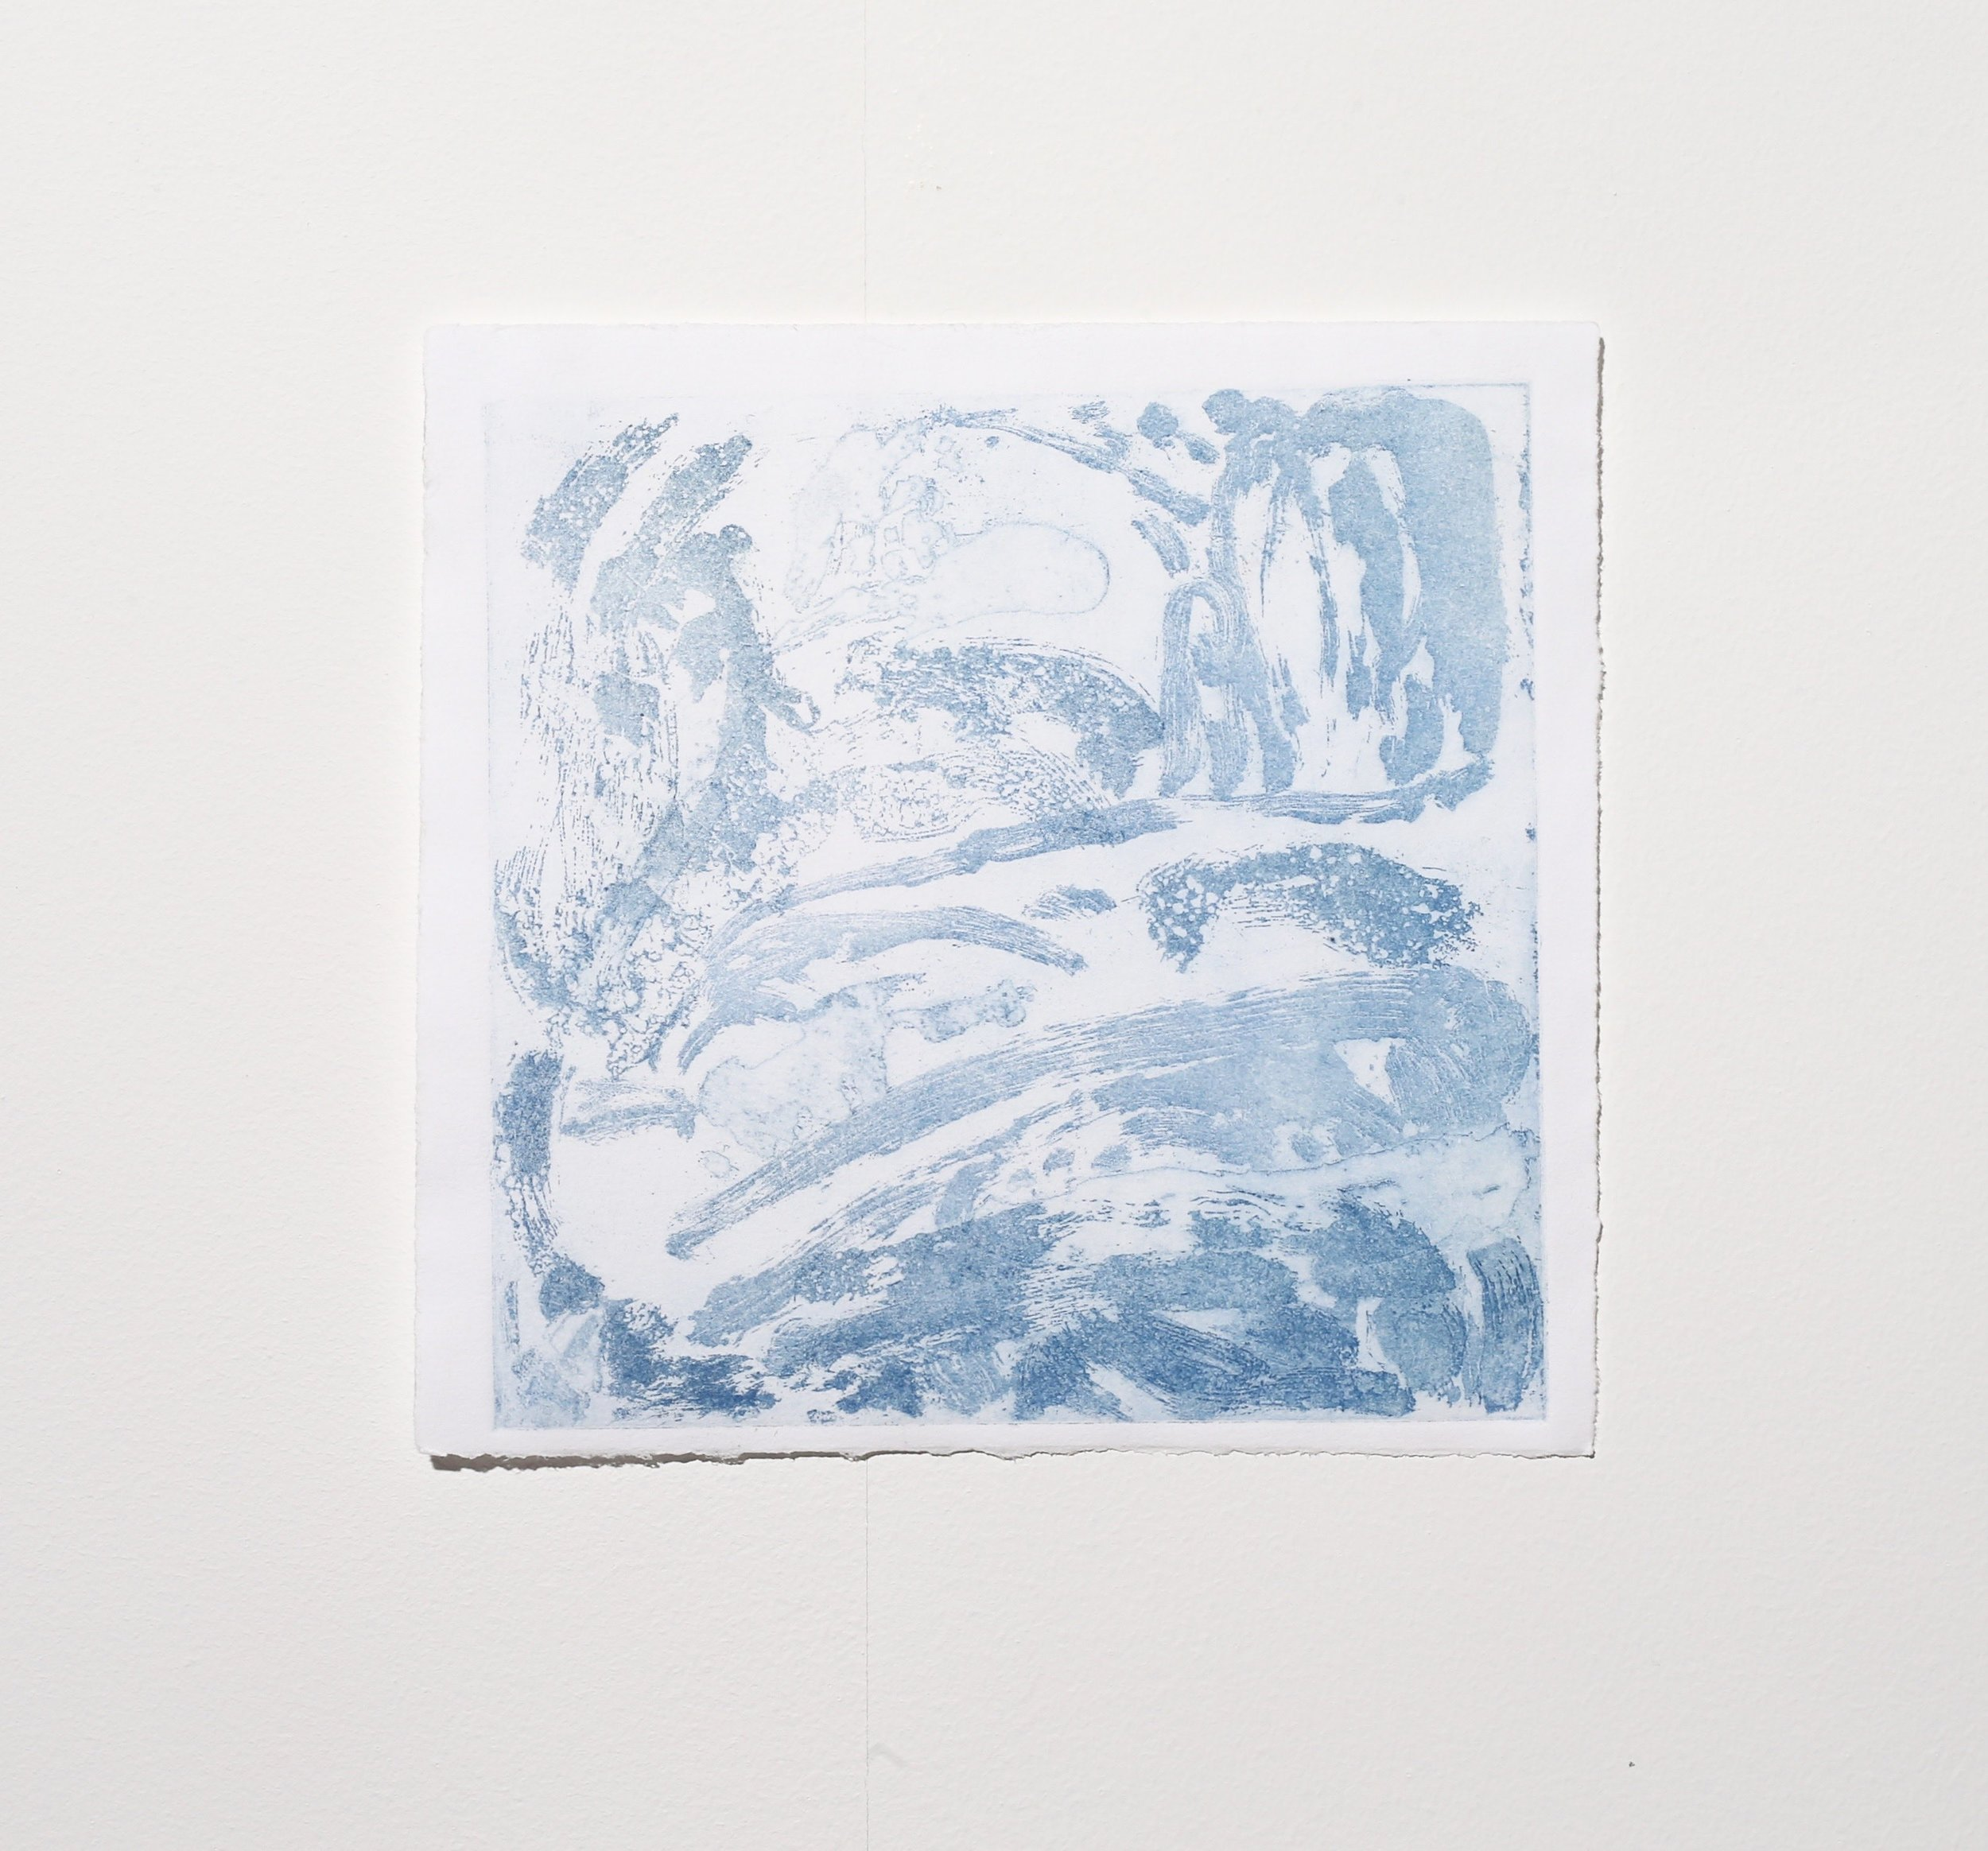 Untitled (stage 2, blue, faint),  2019, sugar lift etching, 14.5 x 14.5 cm (plate size), $65